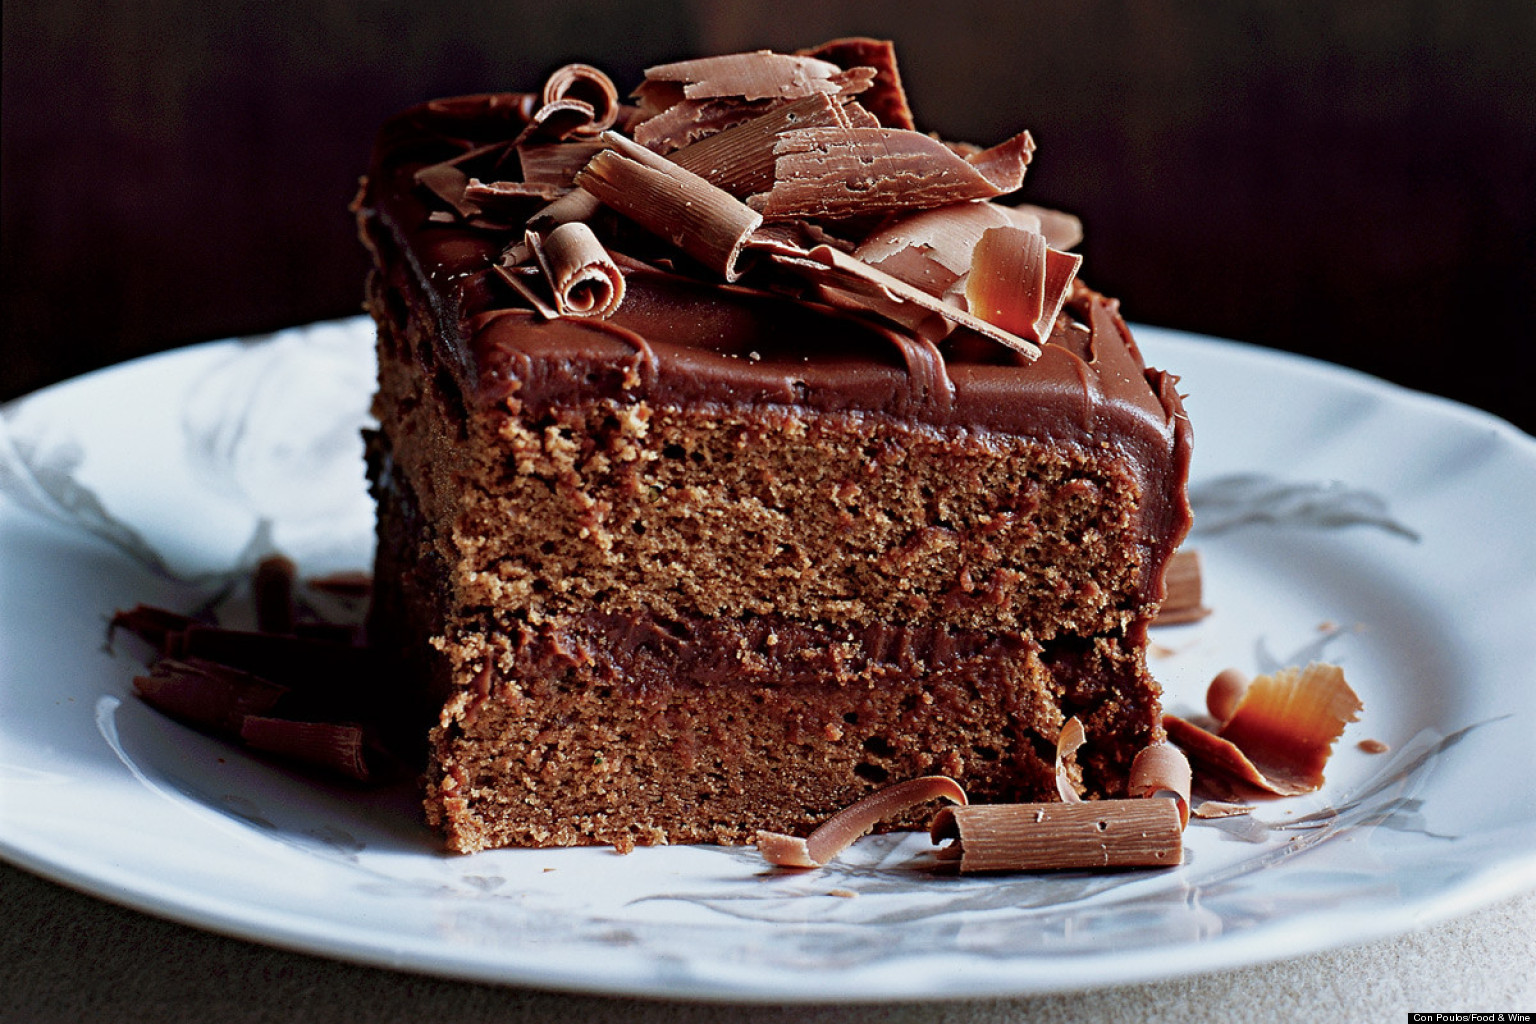 The Best Chocolate Cake Recipes You'll Ever Make (PHOTOS) | HuffPost